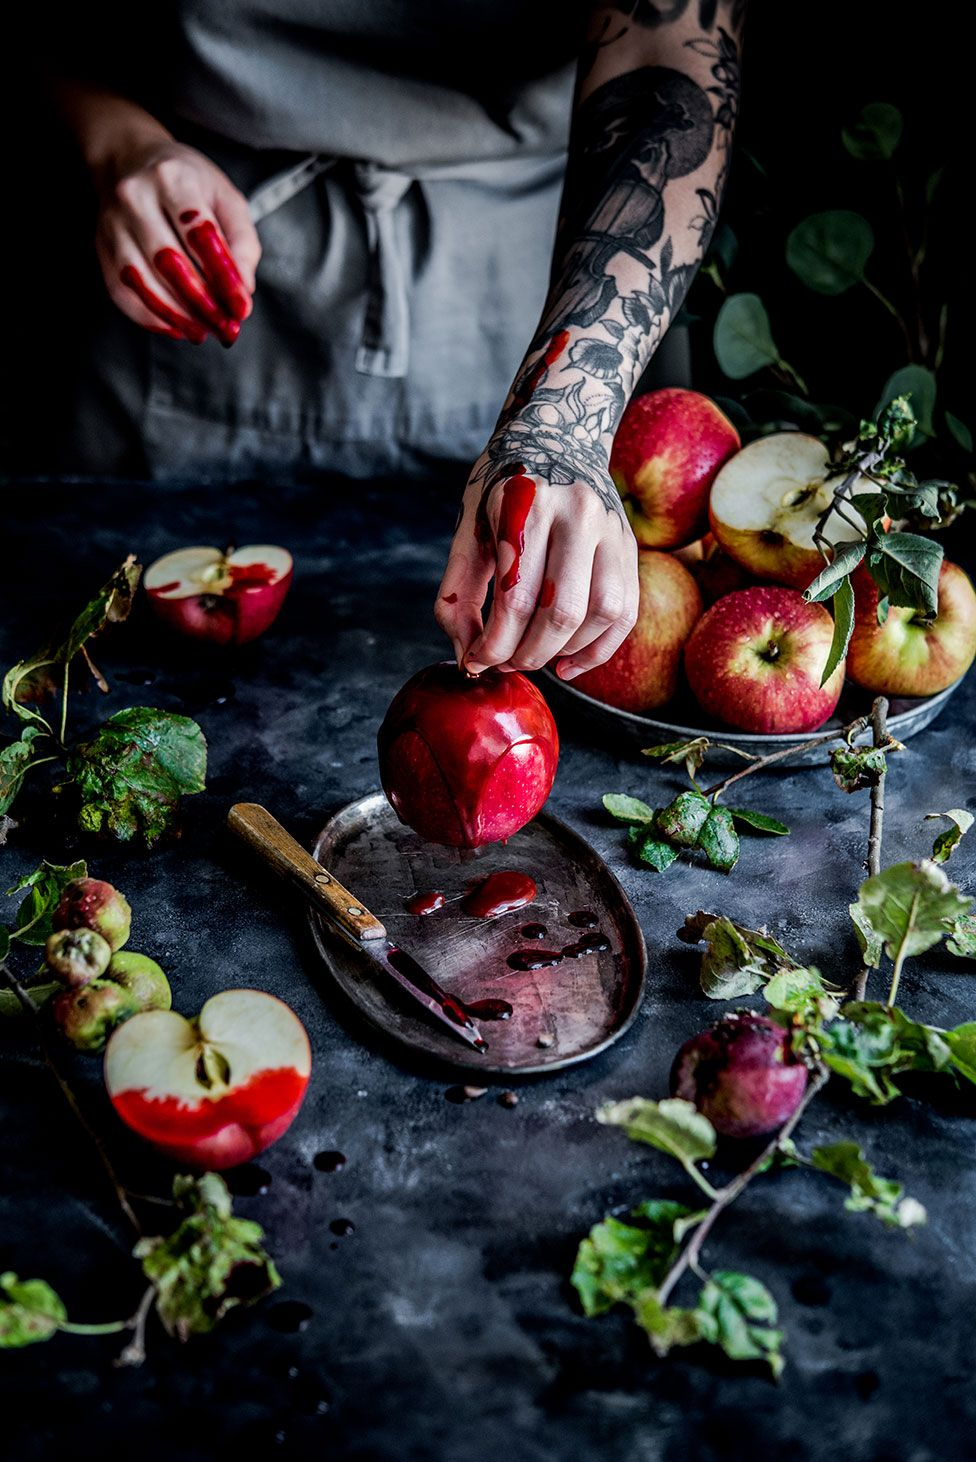 An arm with tattoos on holds an apple that has been dipped in syrup